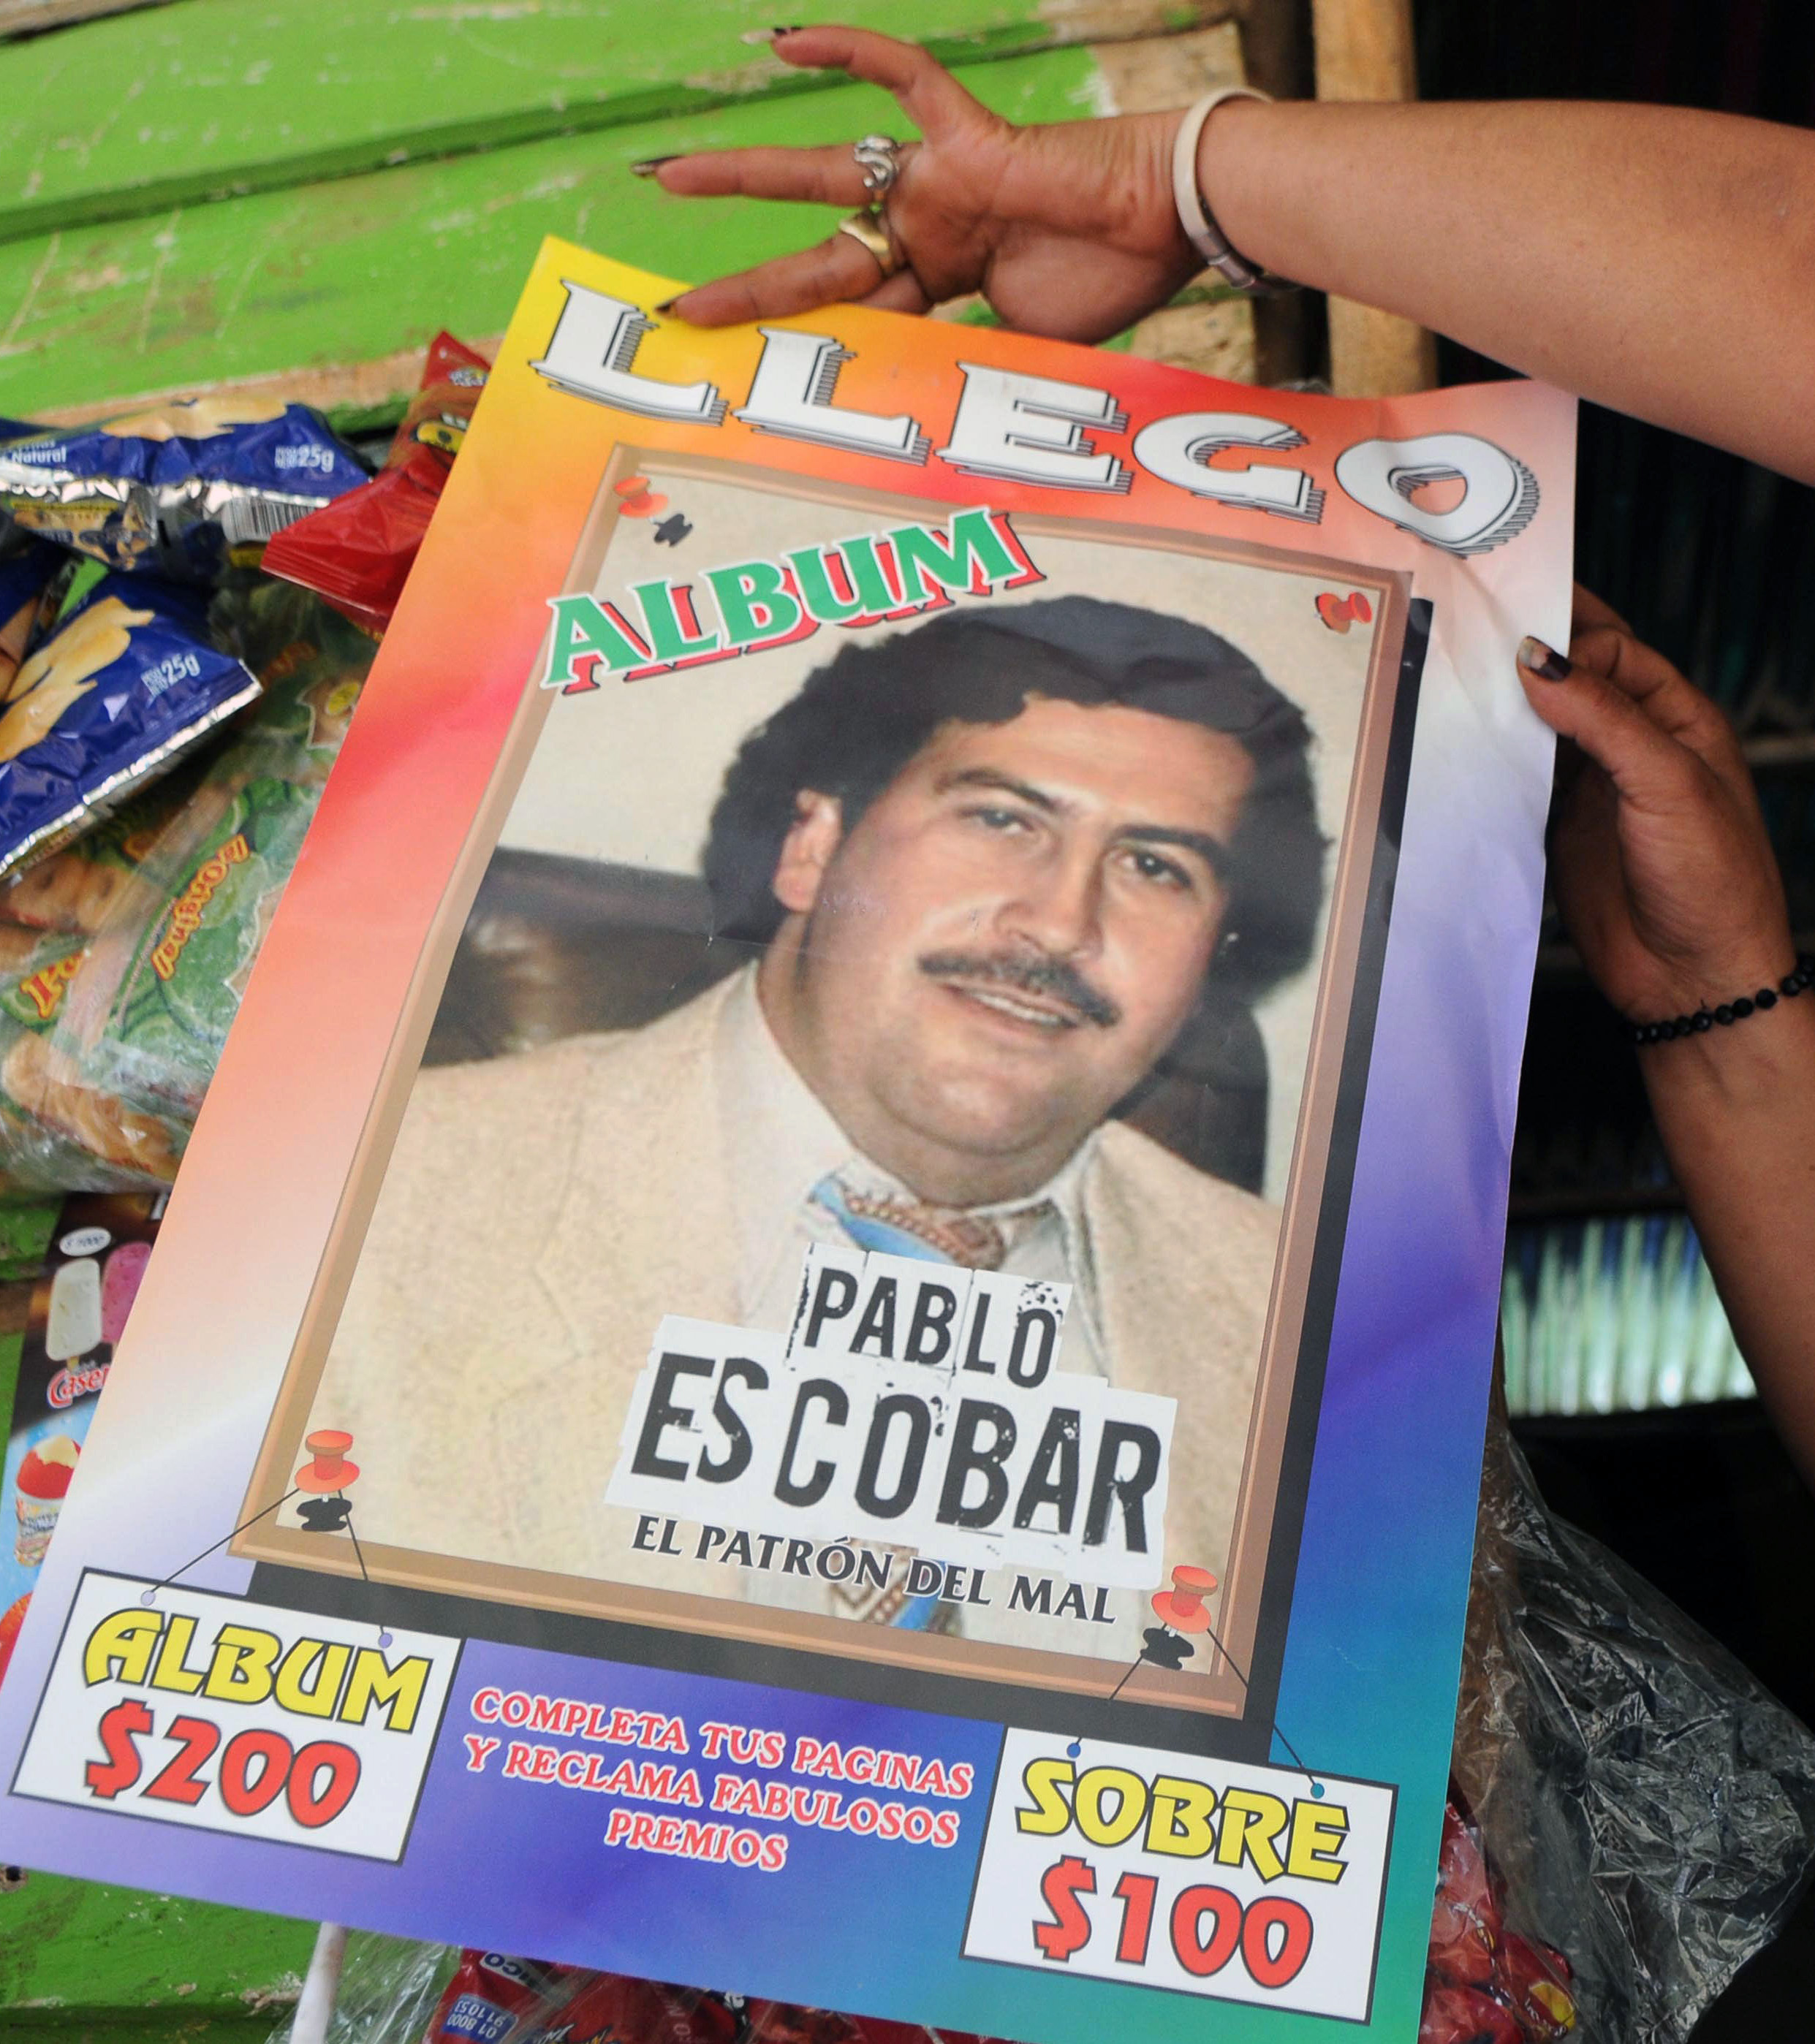 Pablo Escobar's Legacy 25 Years On: Tributes And Disgust